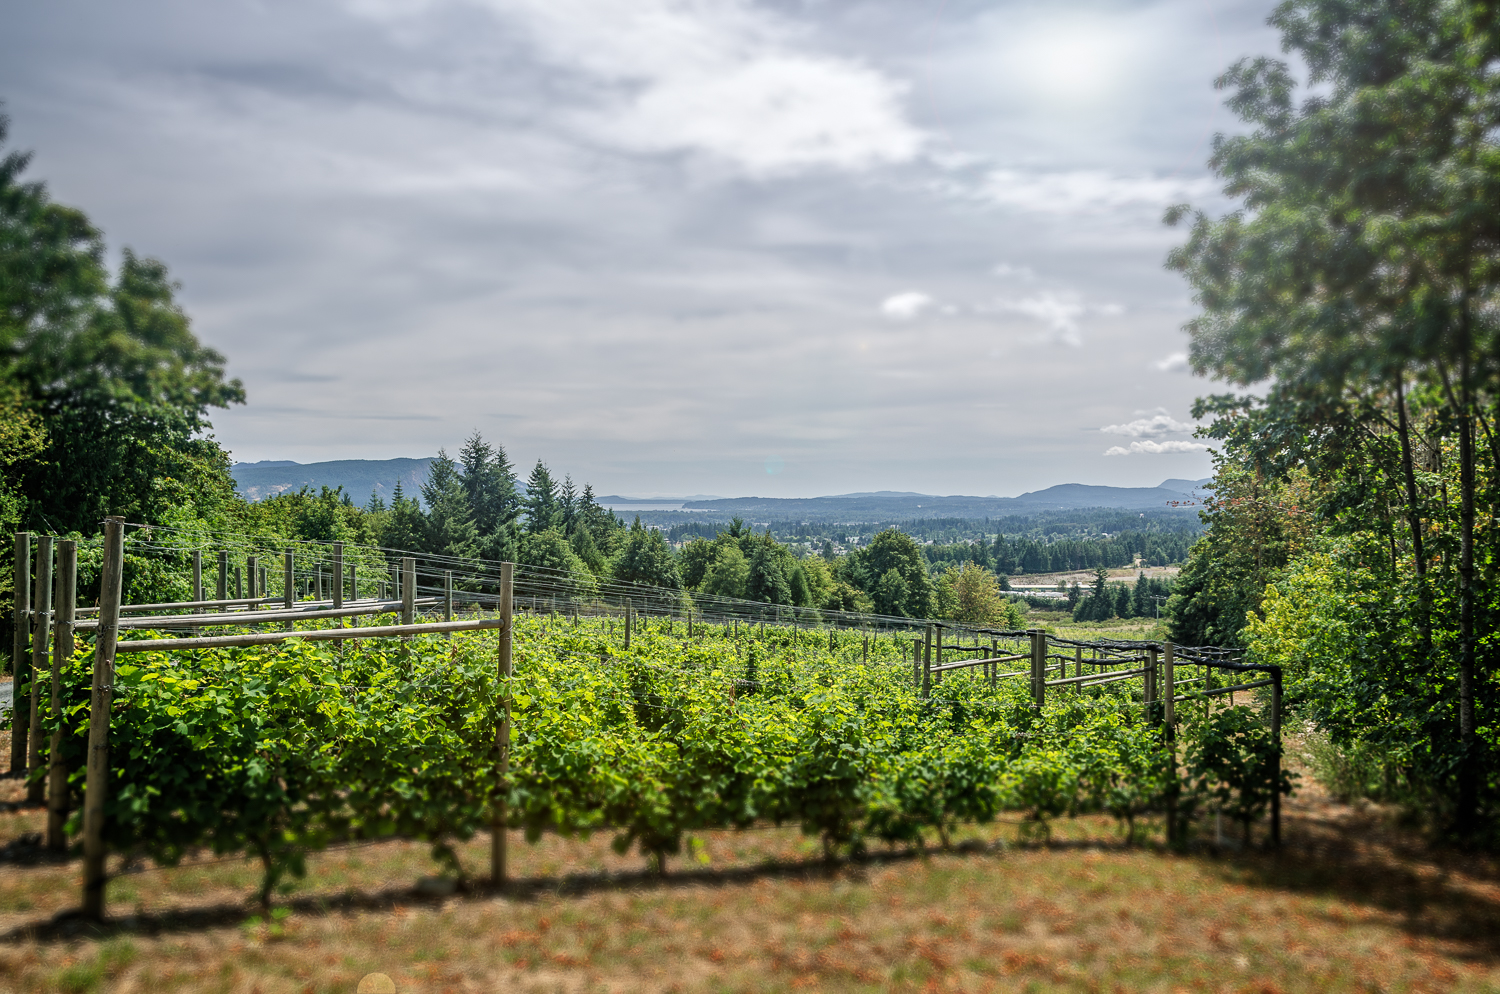 Averill Creek Vineyard View of The Cowichan Valley